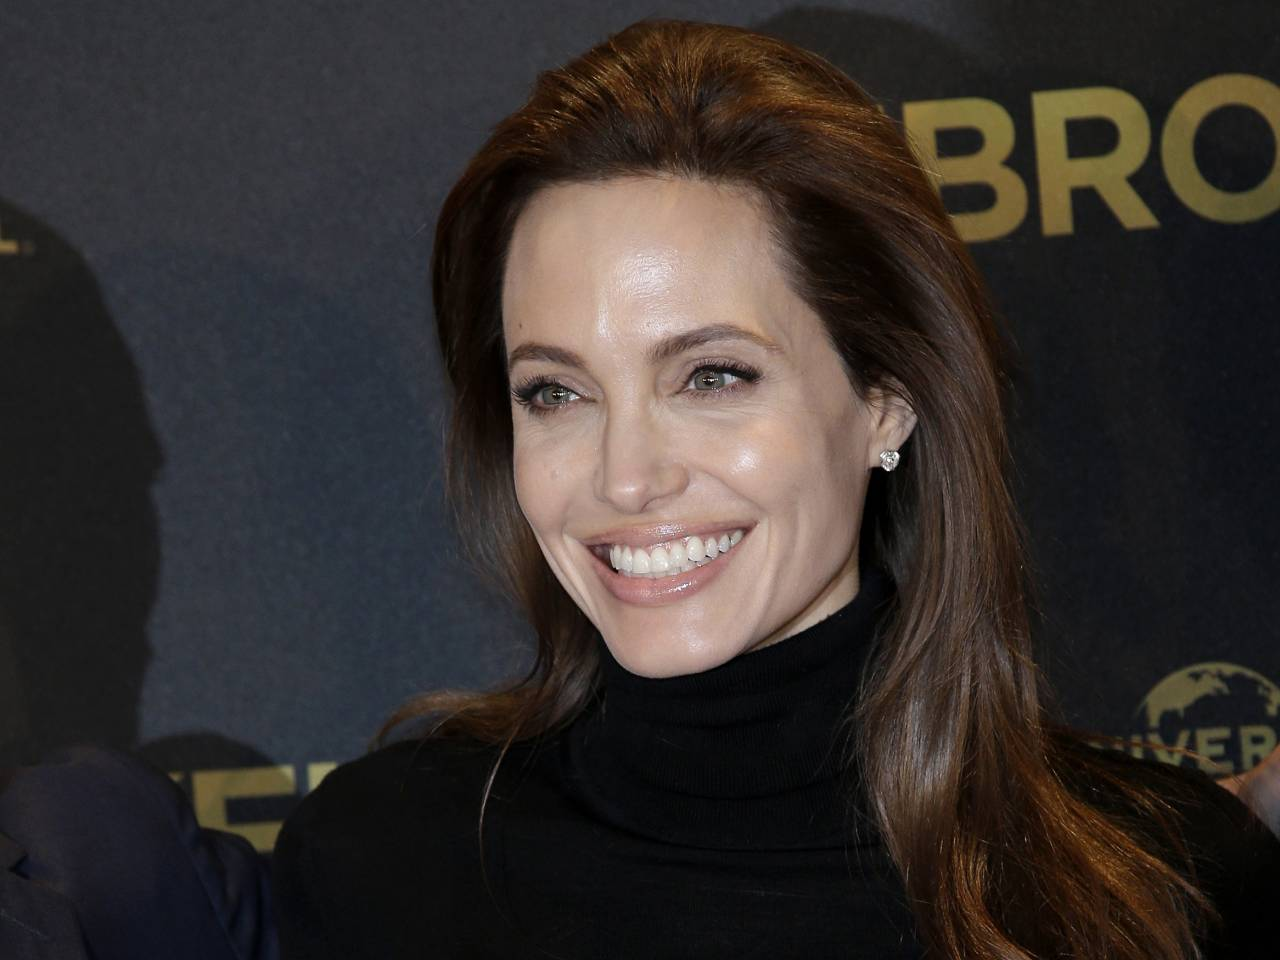 Angelina Jolie has ovaries removed, citing cancer prevention - Salon ... Angelina Jolie